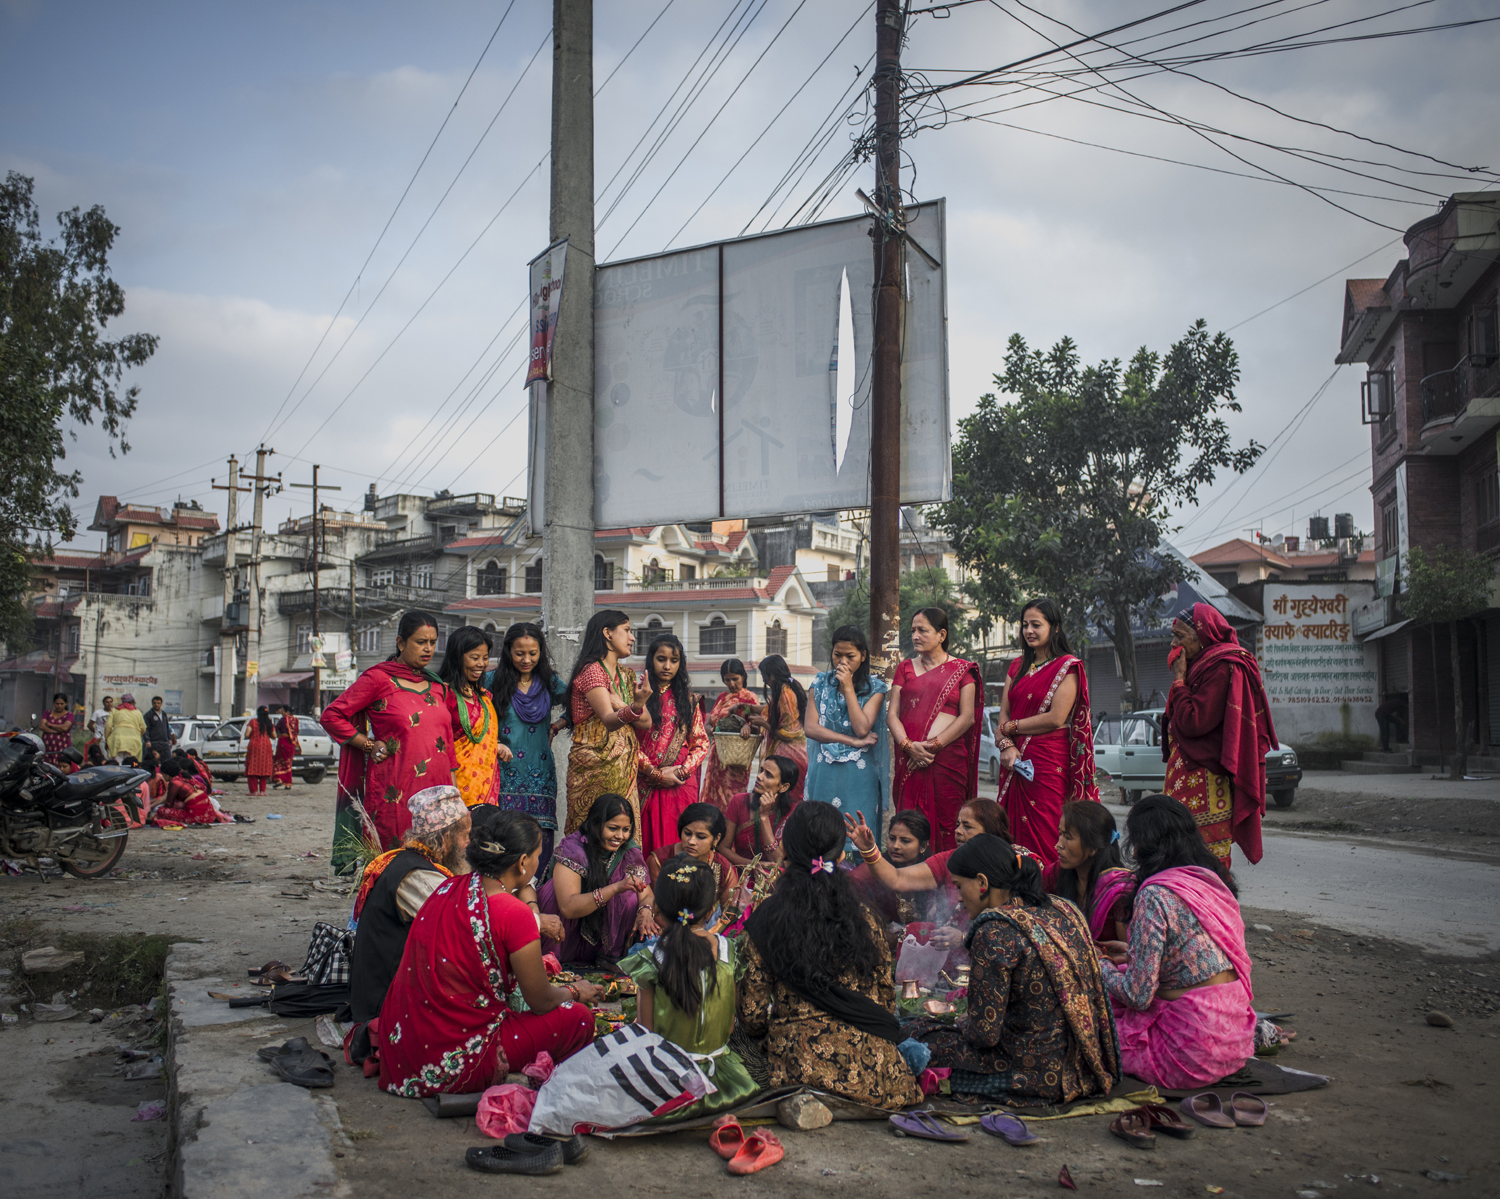 A group of women gather for final prayers during Rishi Panchami. Kathmandu.